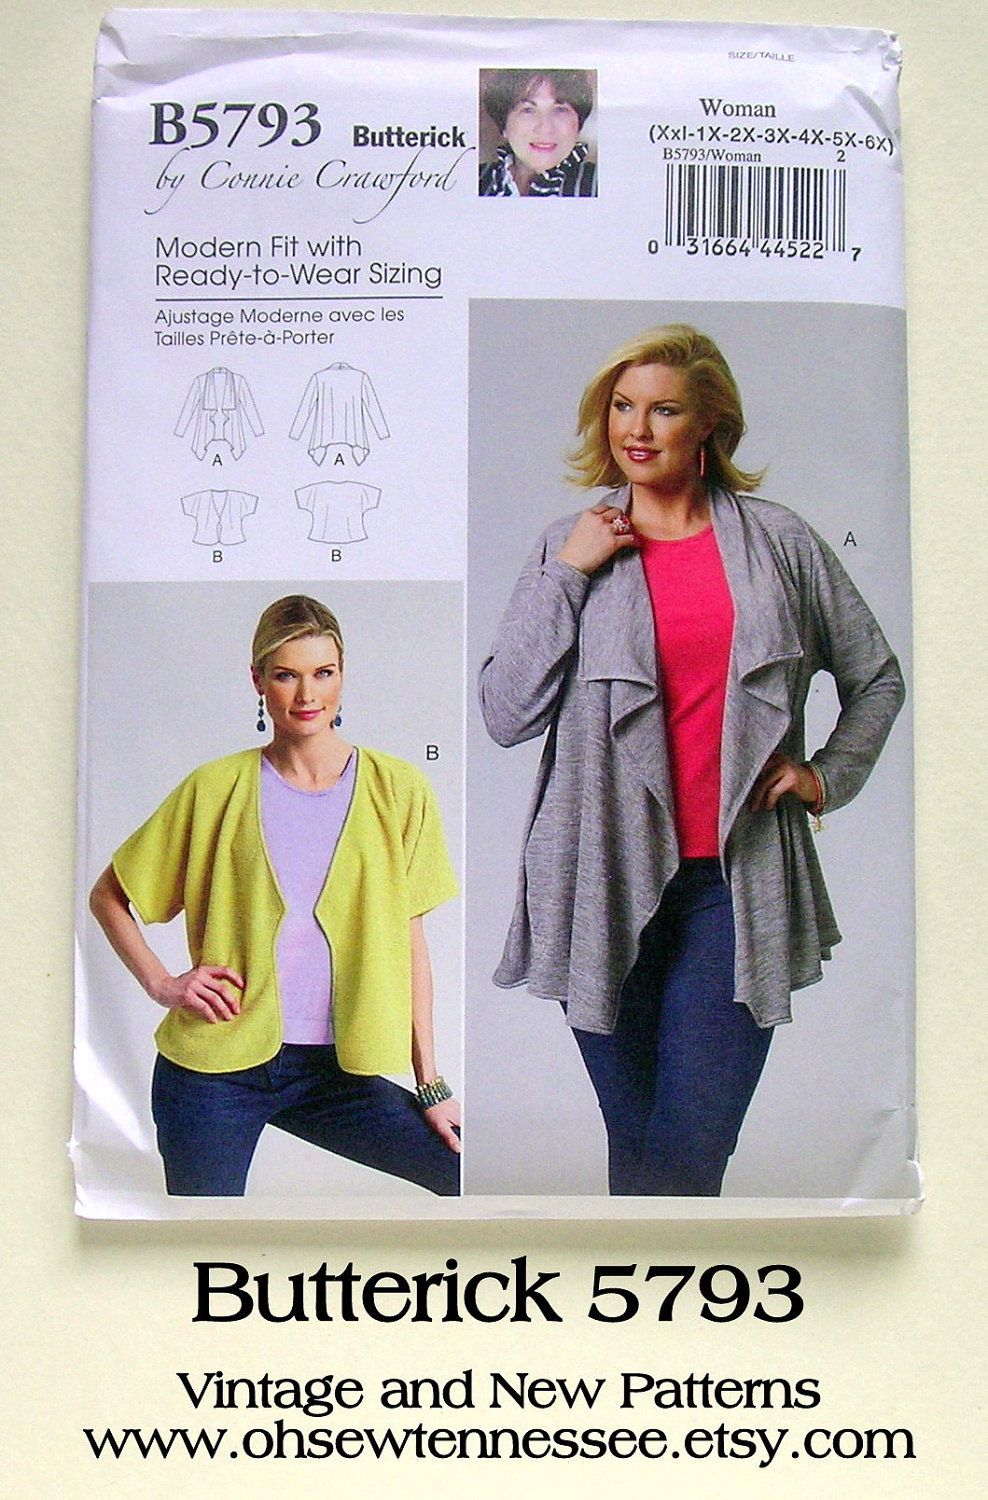 Jackets for plus size gals butterick 5793 a new sewing pattern jackets for plus size gals butterick 5793 a new sewing pattern size 22w jeuxipadfo Image collections